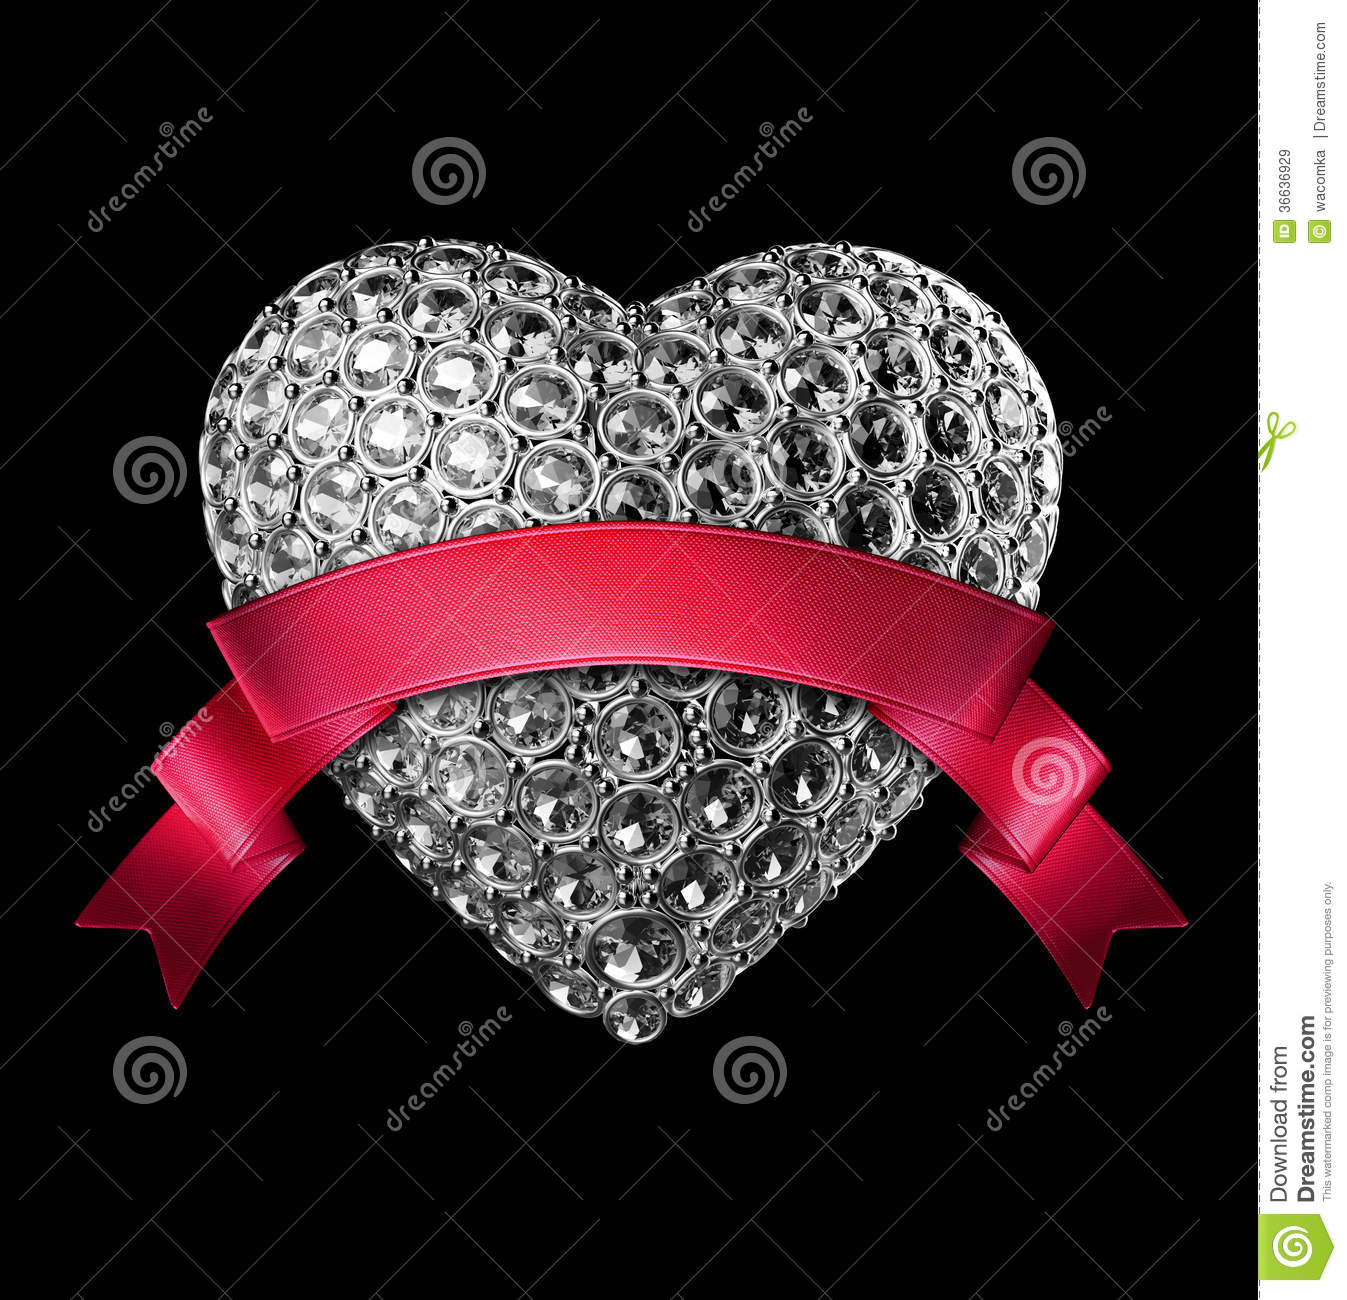 3d Silver Diamond Heart Symbol With Crystals Royalty Free Stock Images - Image: 36636929